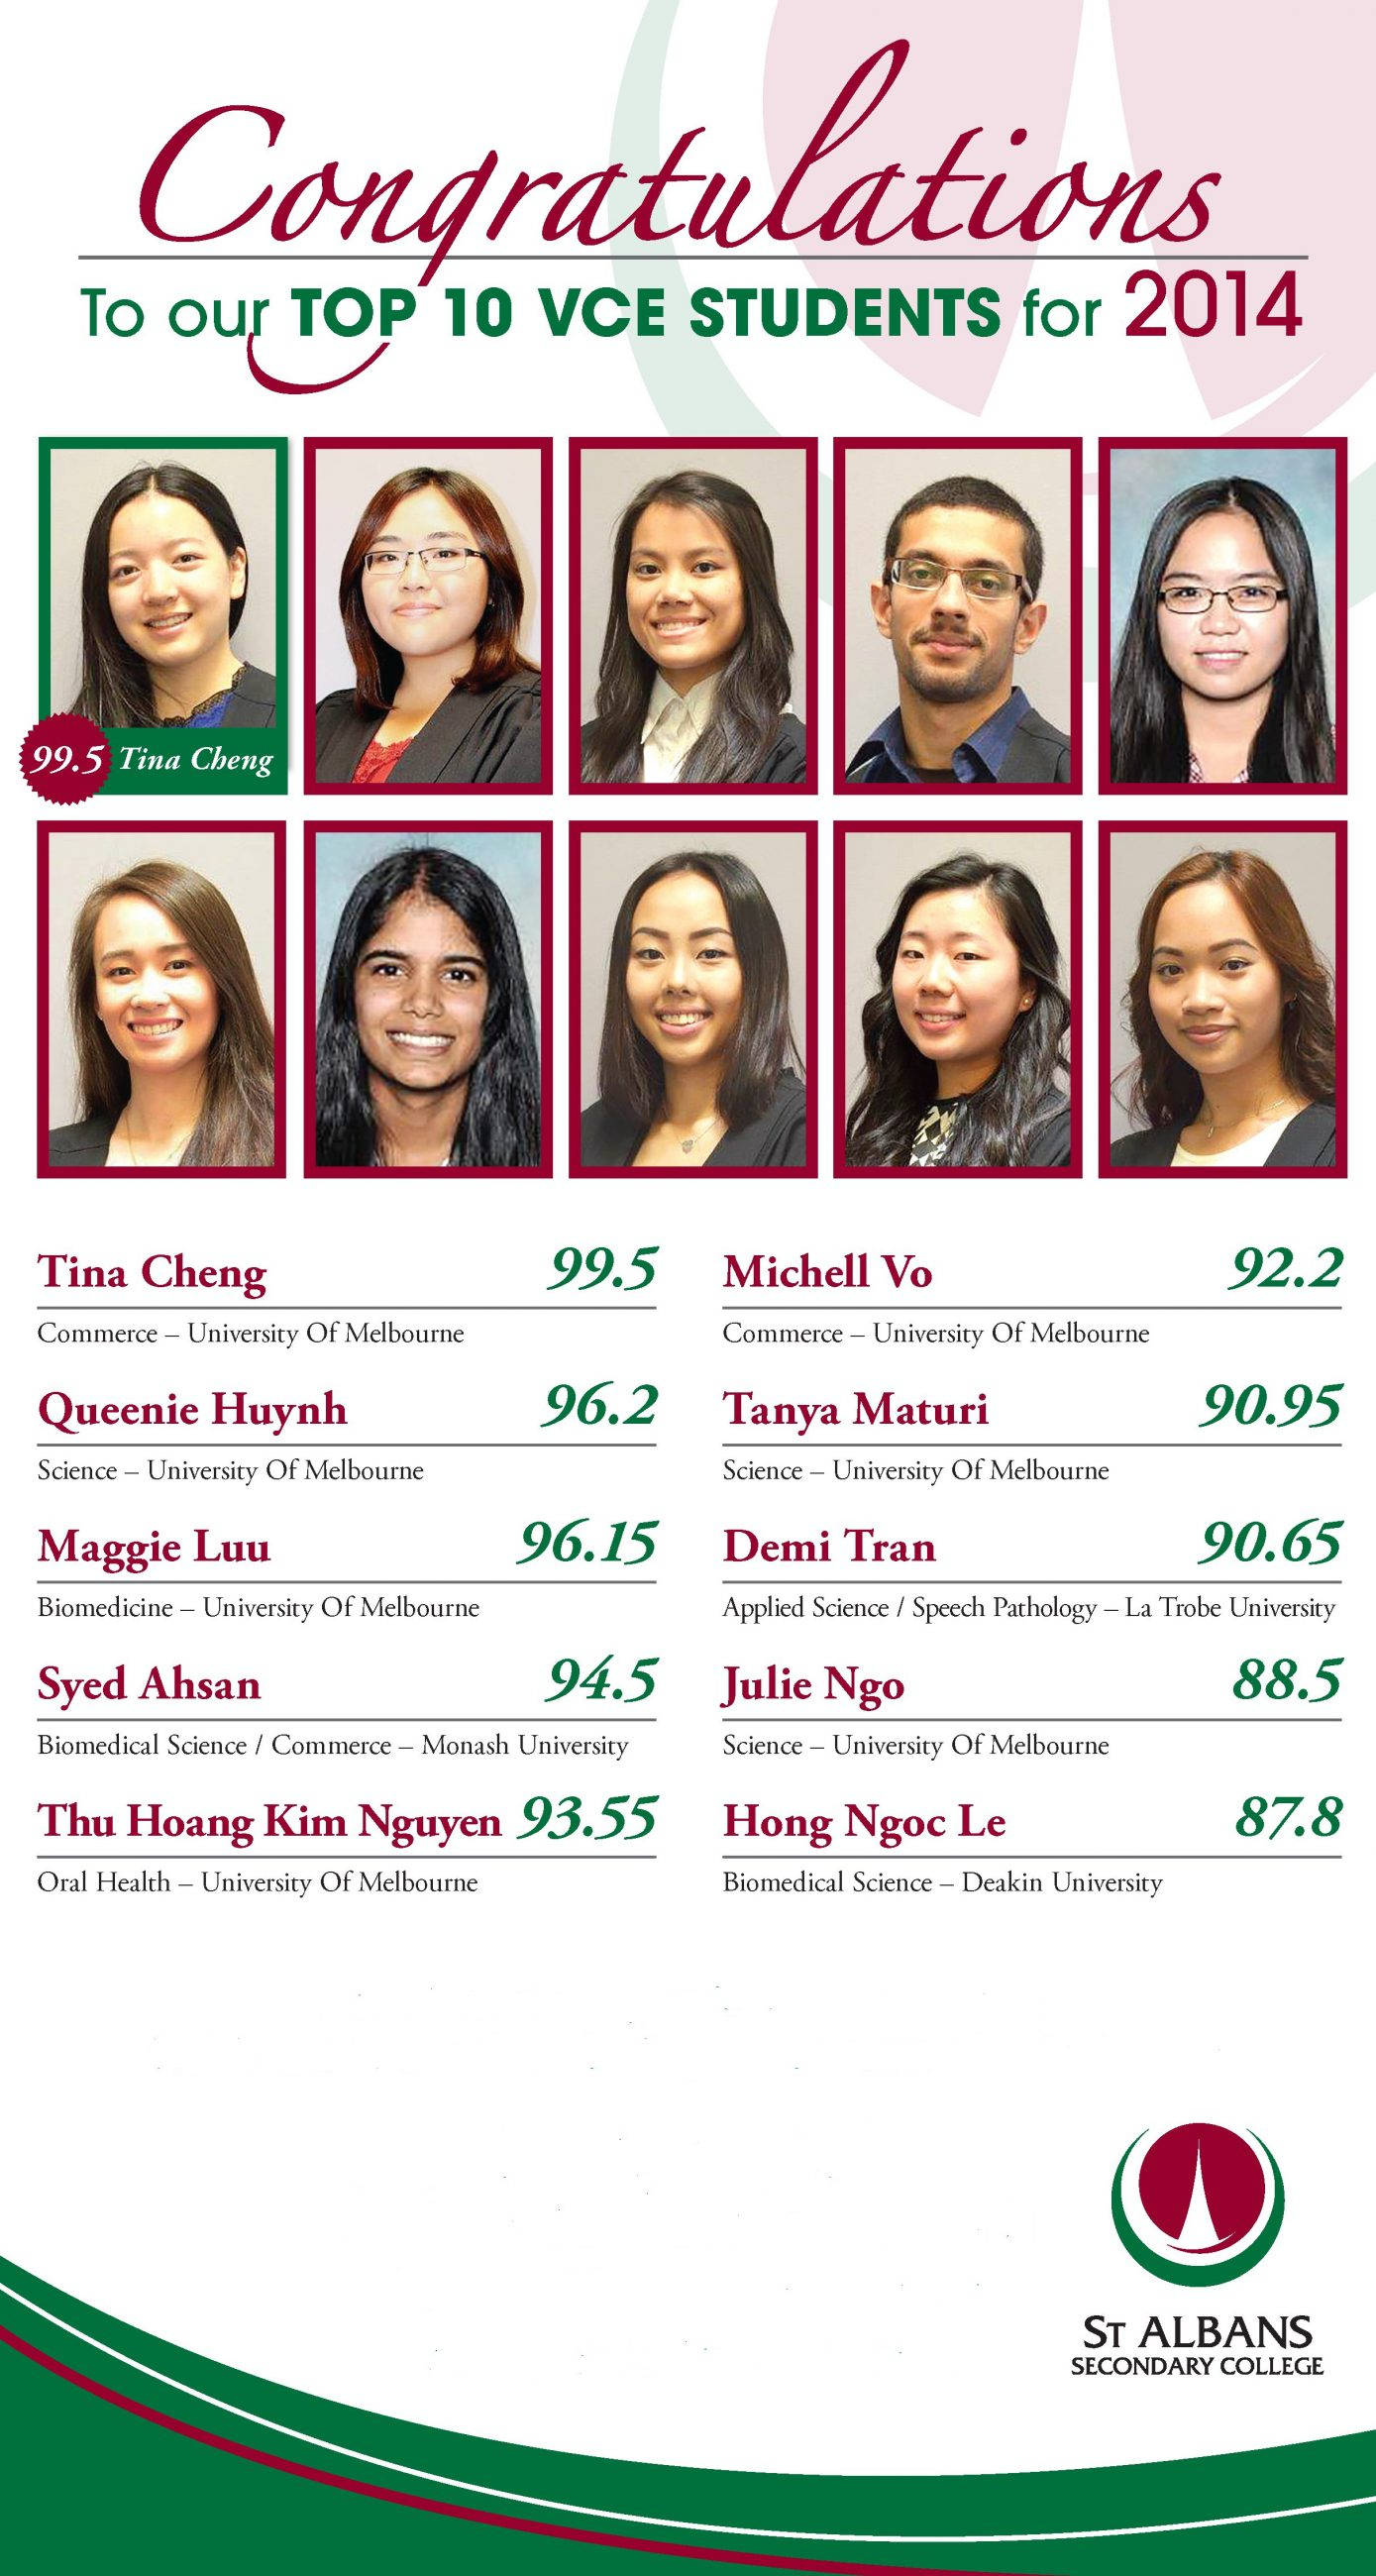 ST ALB V2015 Top 10 Students for Billboard CE 2014 Top 10 Billboard 205x384_PRINT